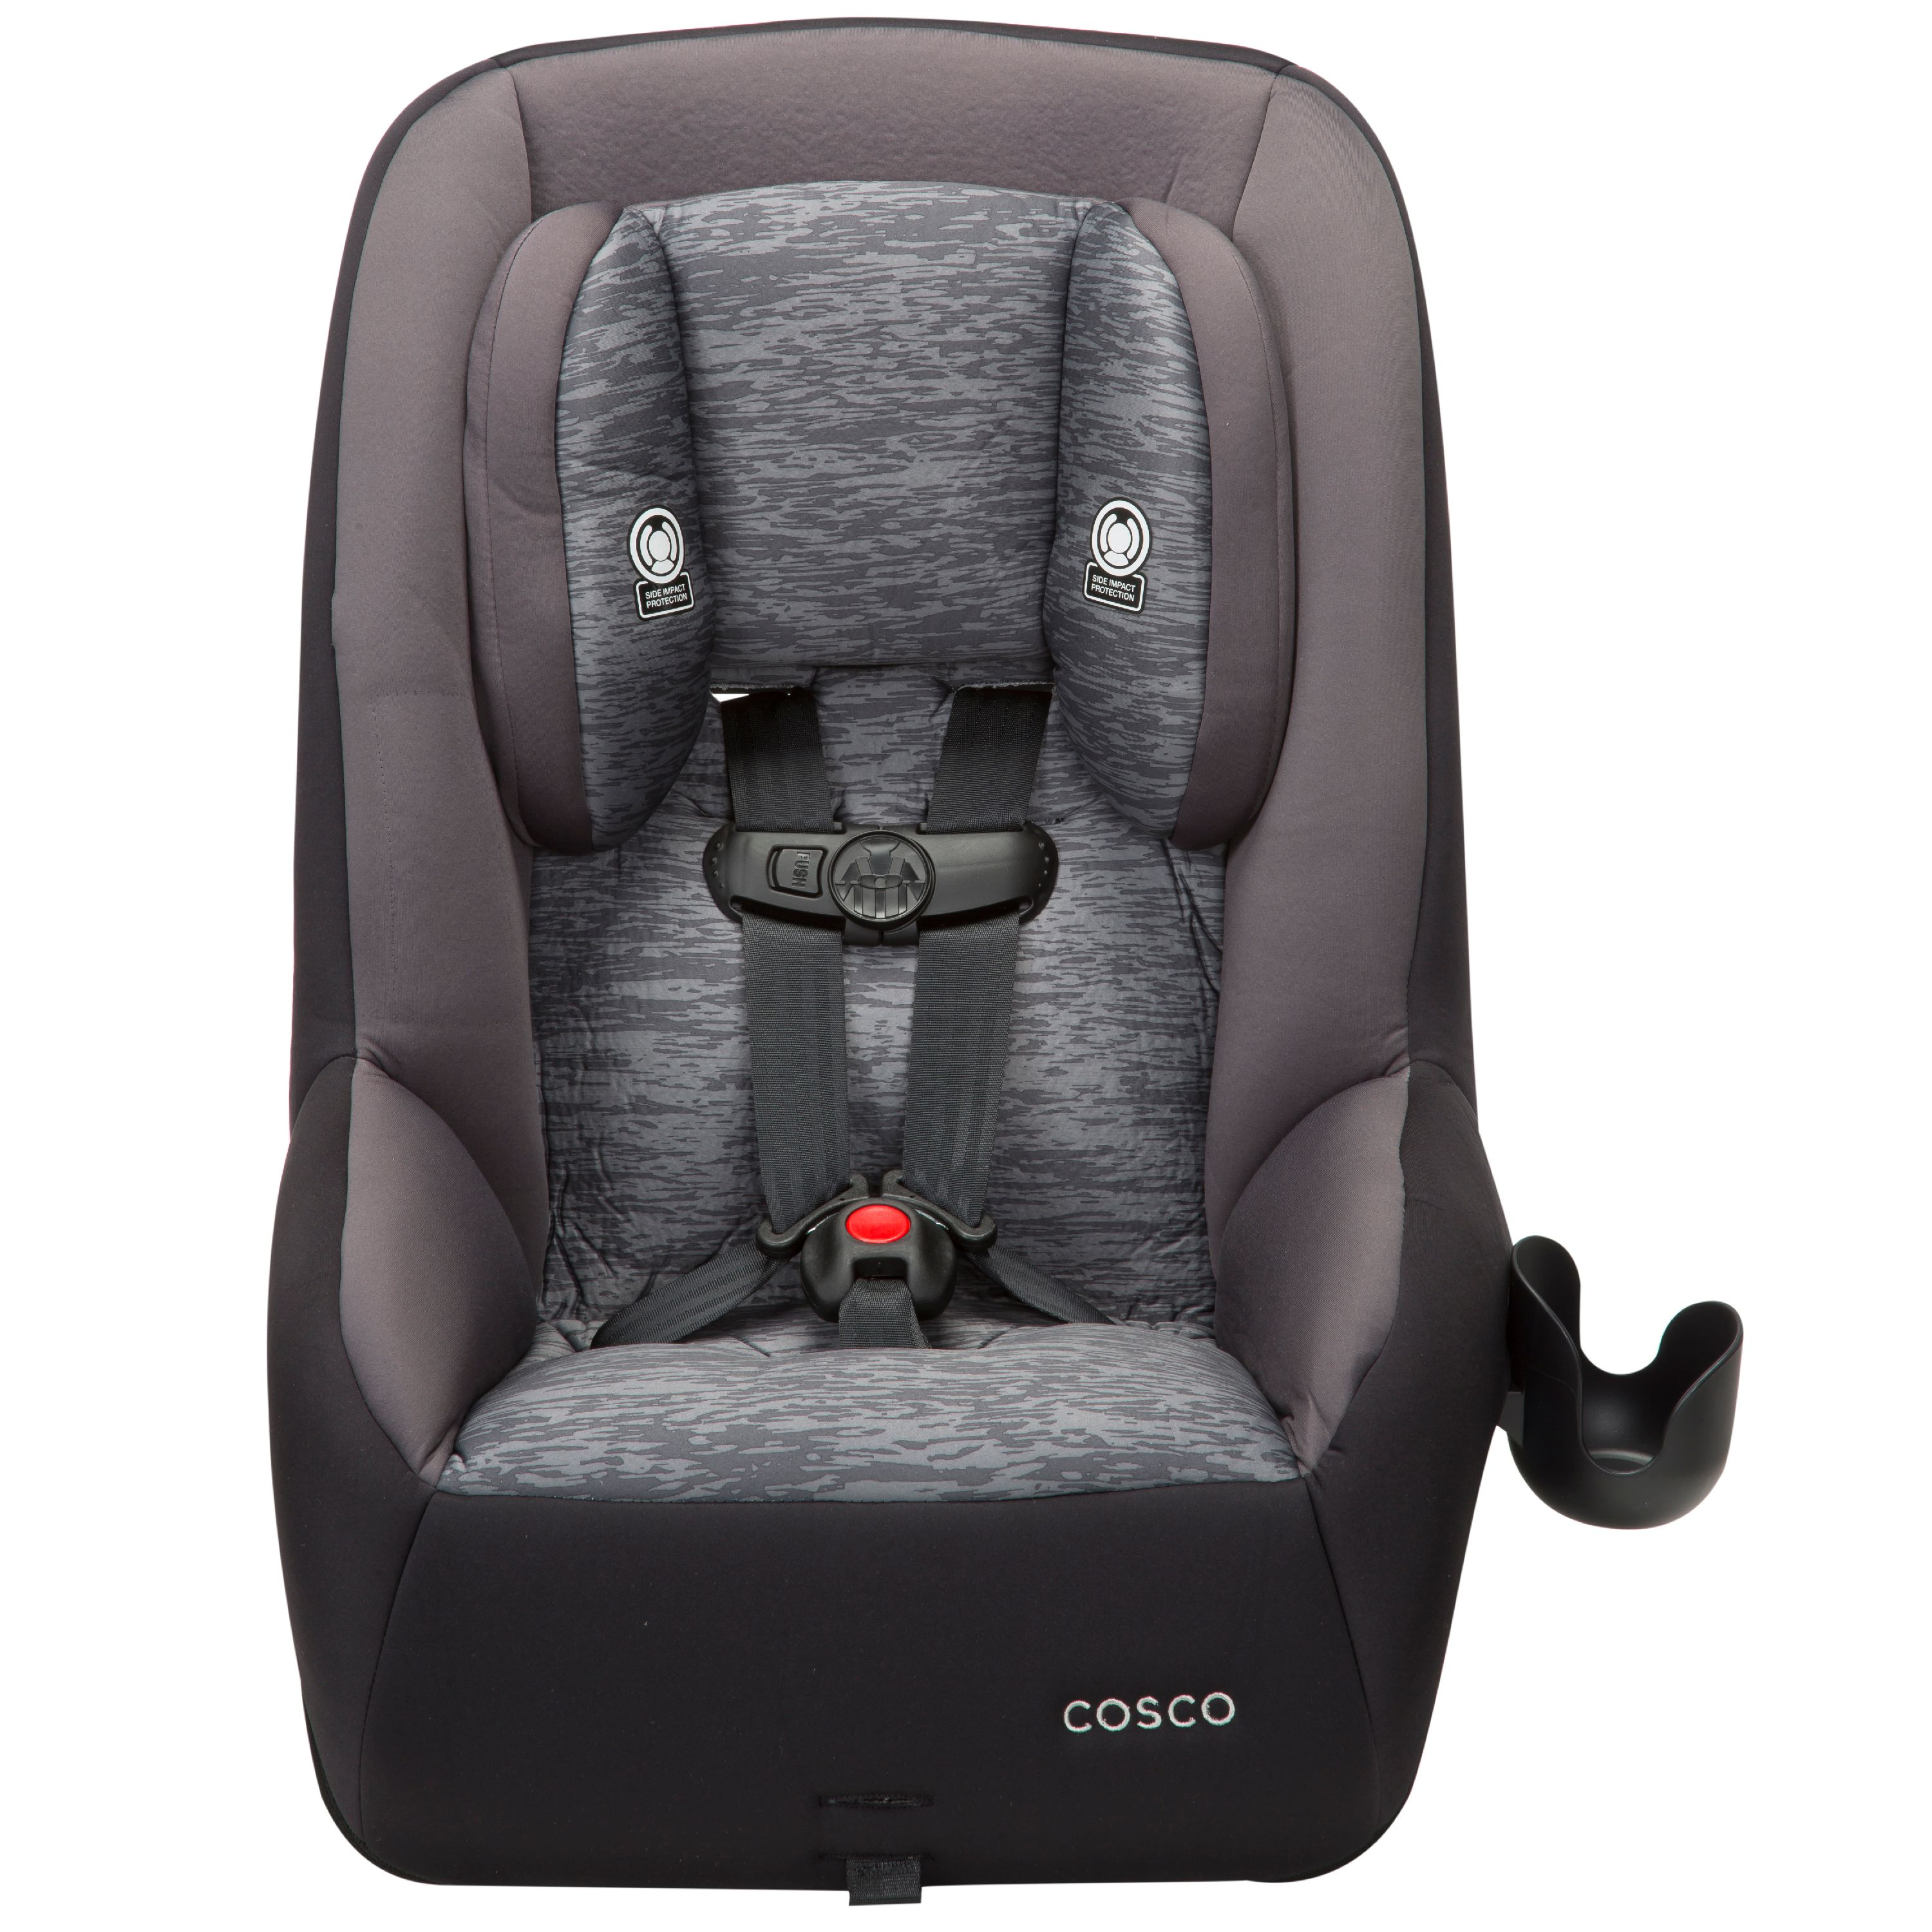 Cosco MightyFit 65 DX Convertible Car Seat, Heather Onyx